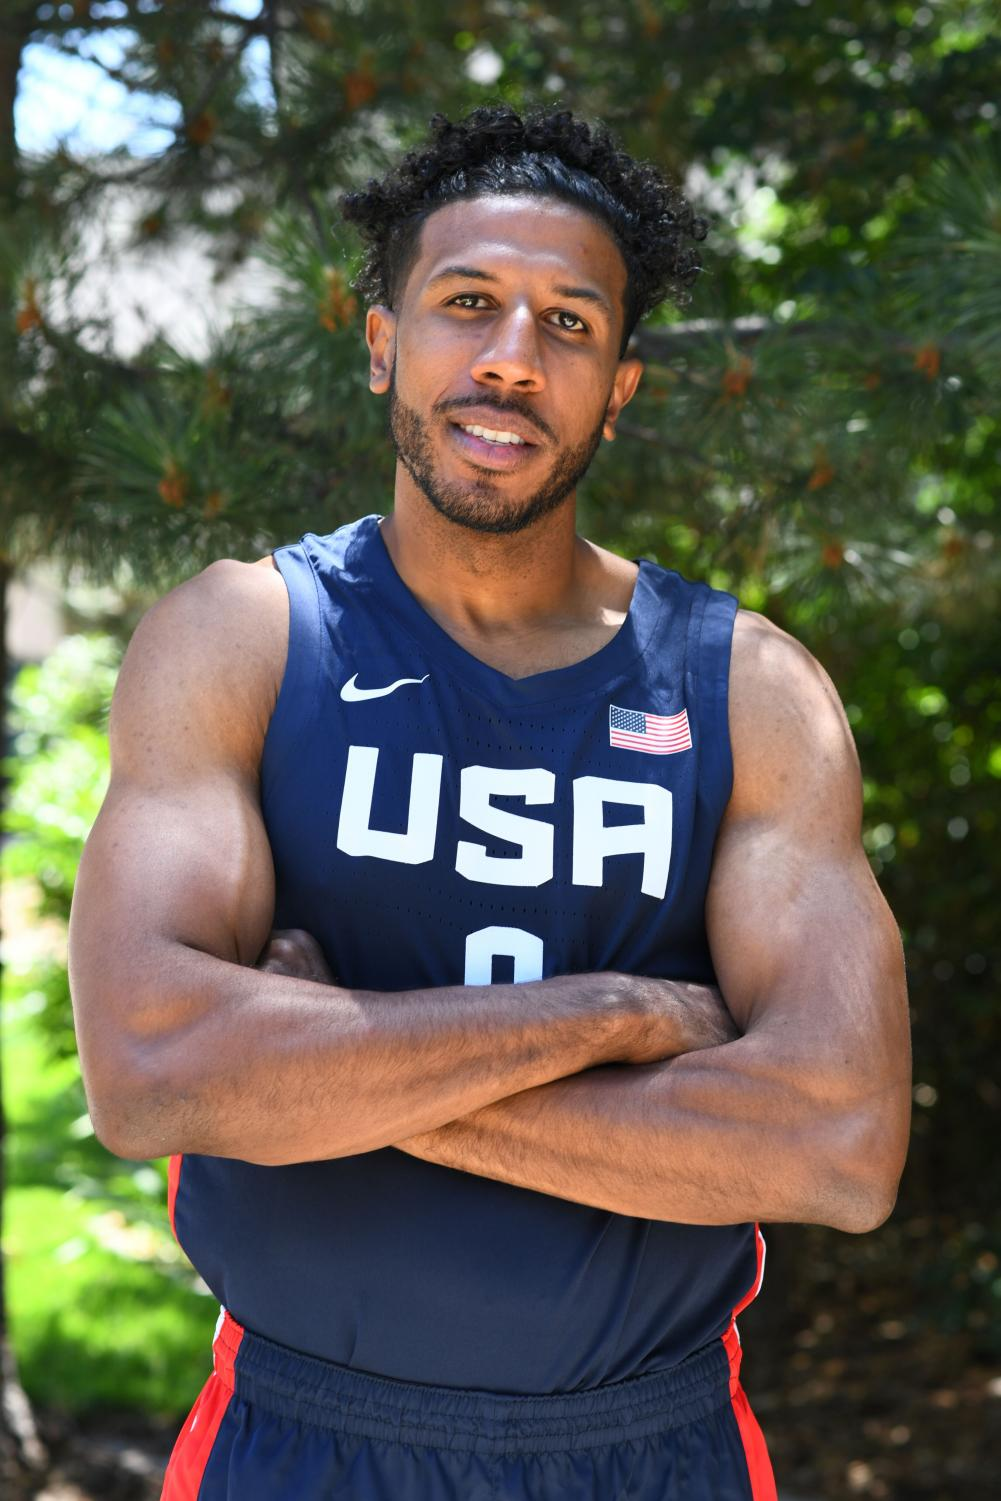 Kareem Maddox hopes to participate in the 2020 Olympics in Tokyo, Japan.